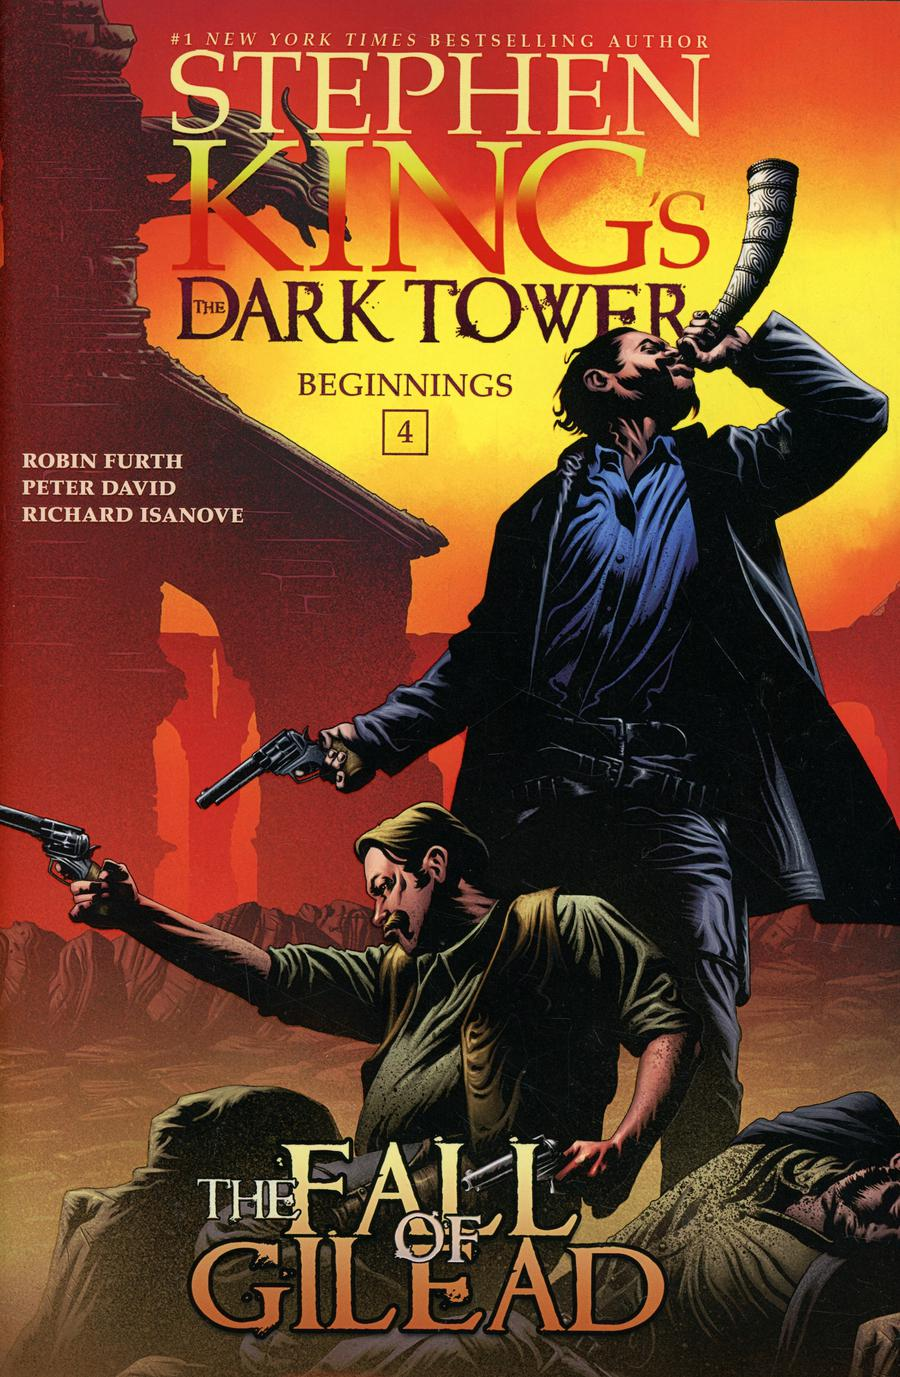 Dark Tower Beginnings Vol 4 Fall Of Gilead HC